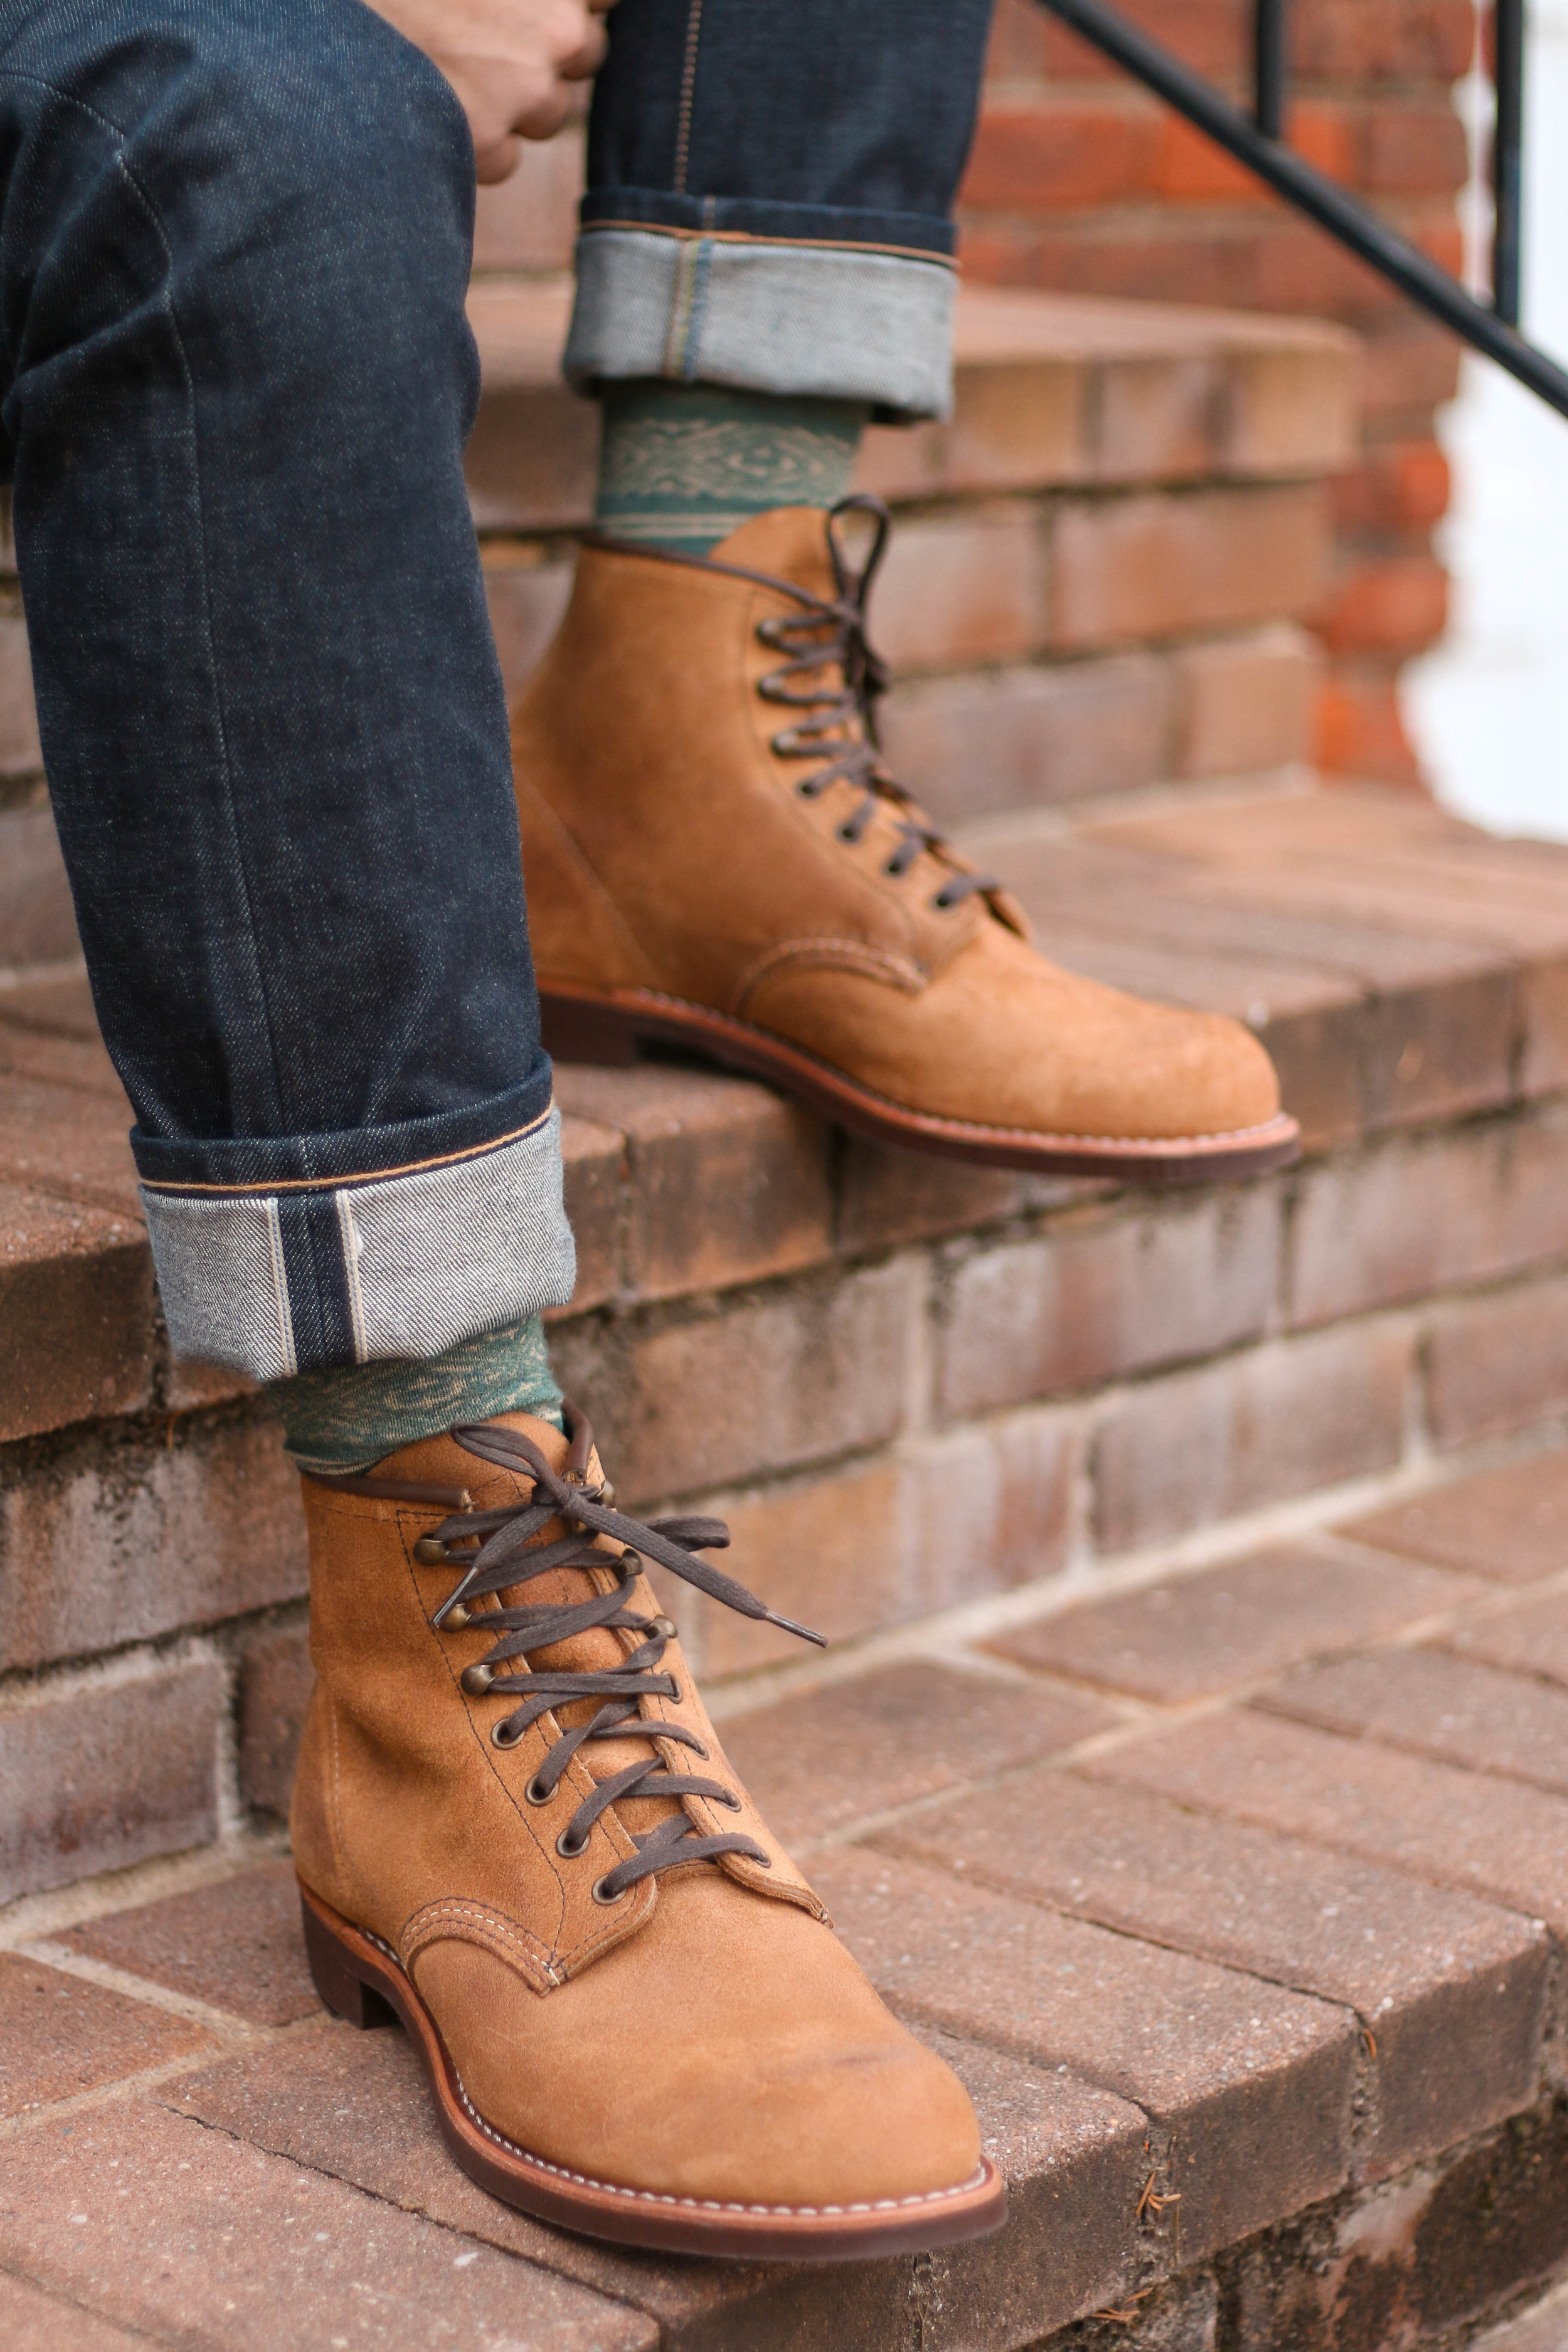 Try walking up a flight of steps and feel if your heel is slipping or securely in place.